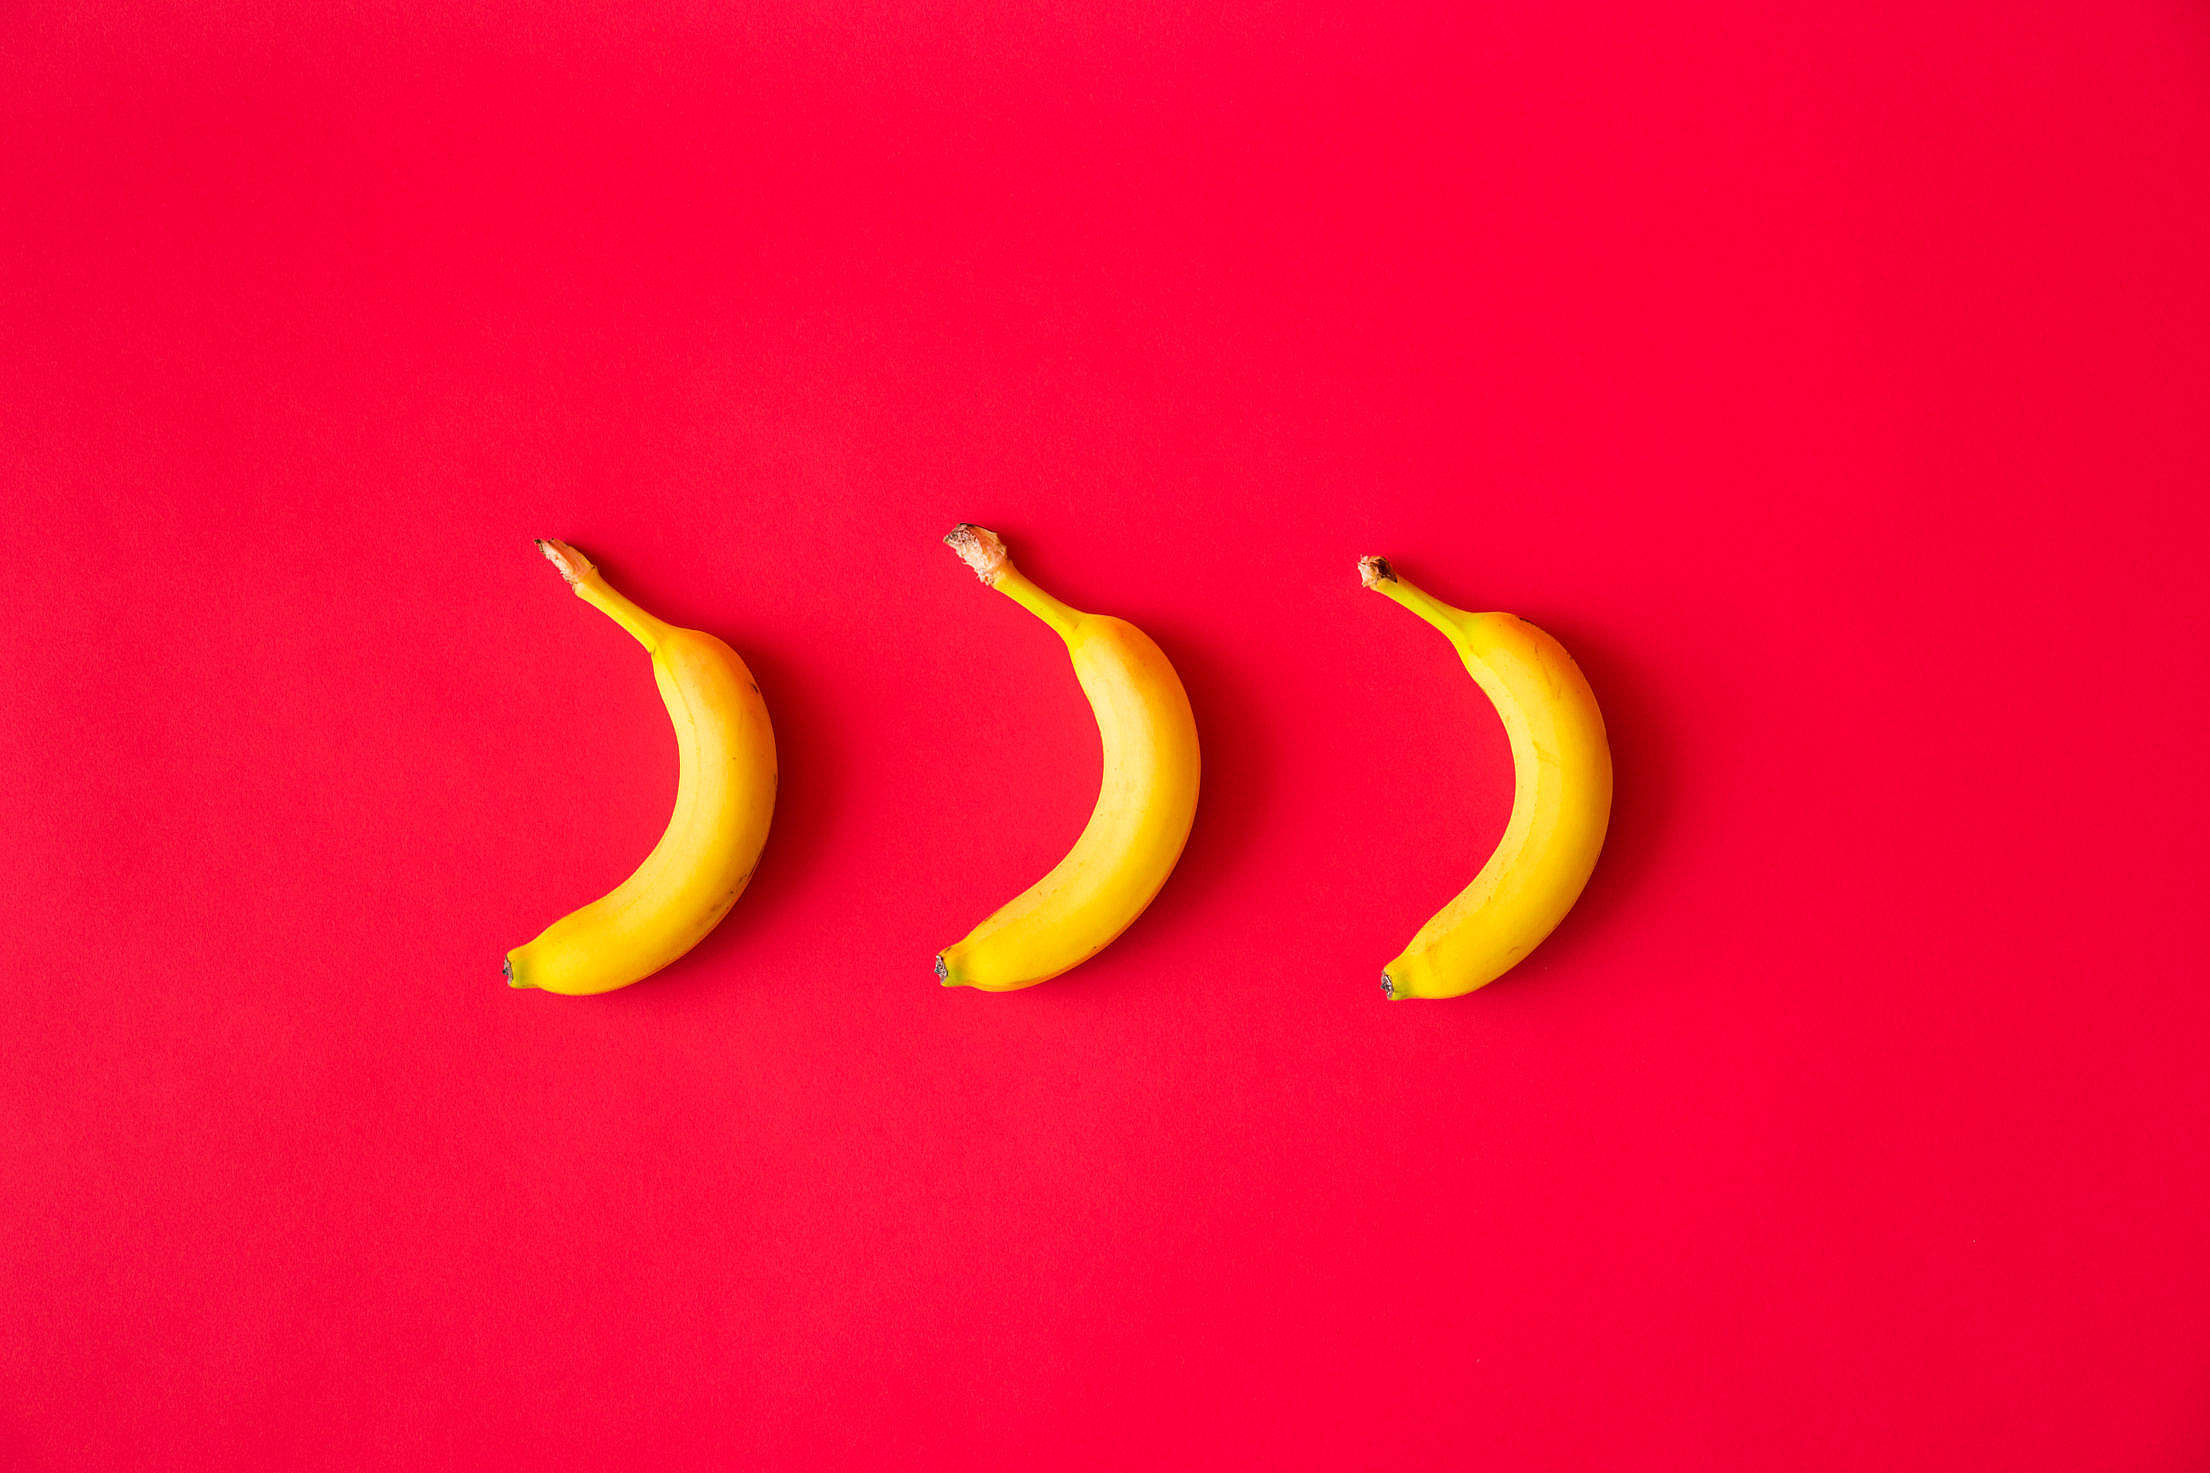 Bananas with Red Flat Background Free Stock Photo